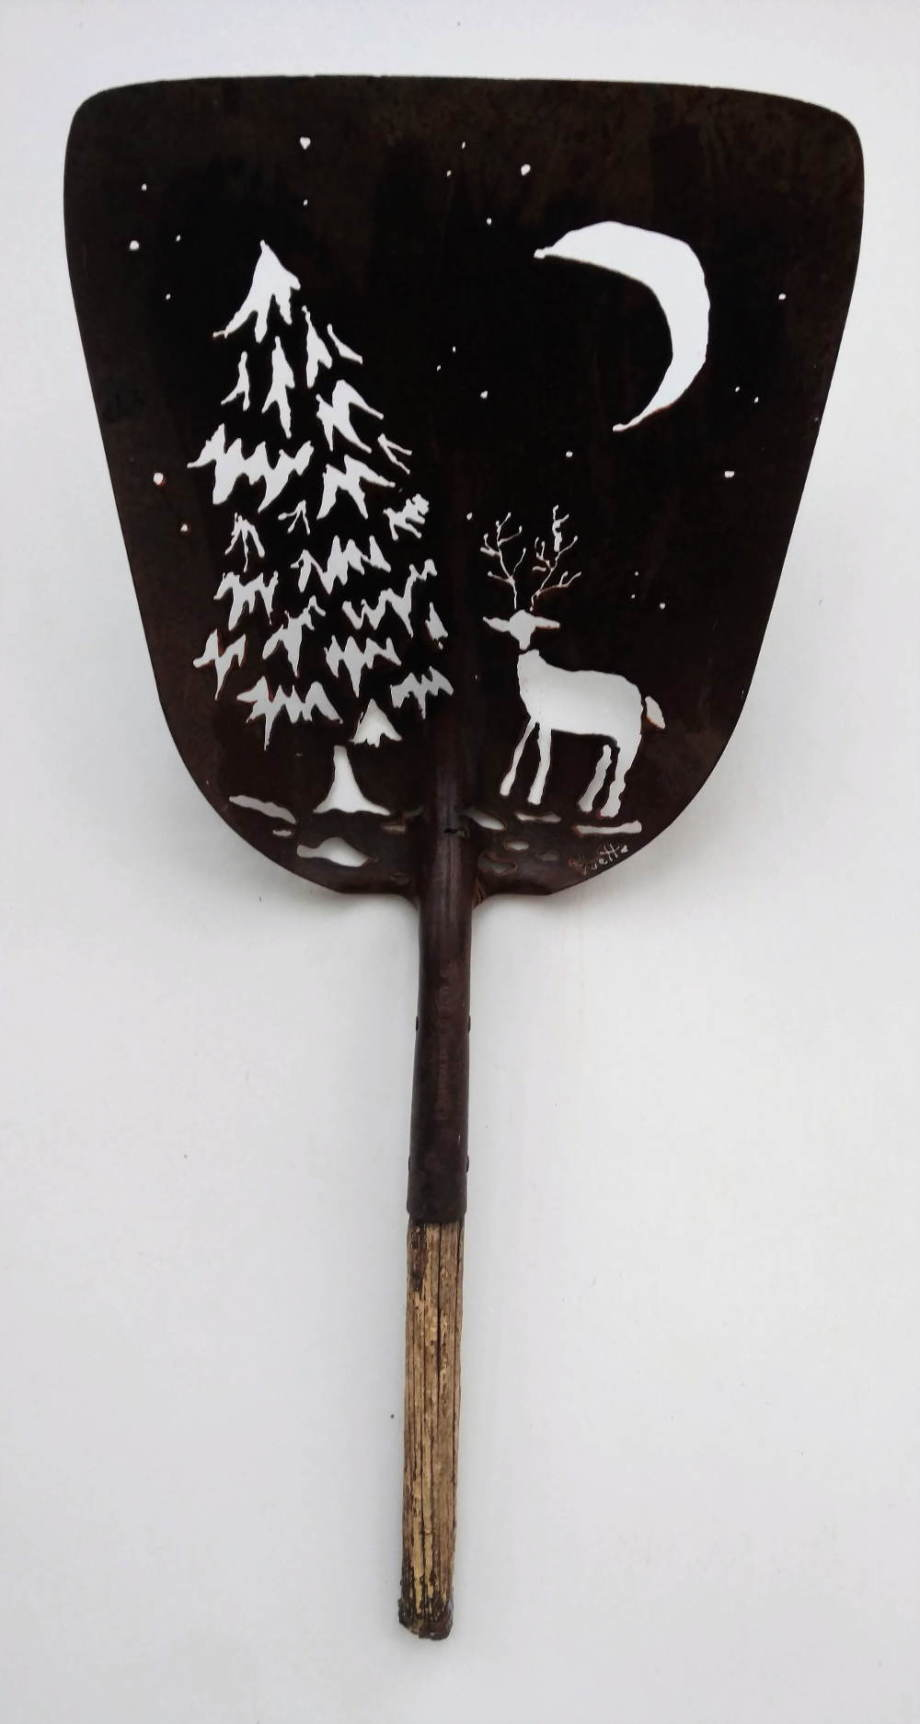 Winter Night shovel